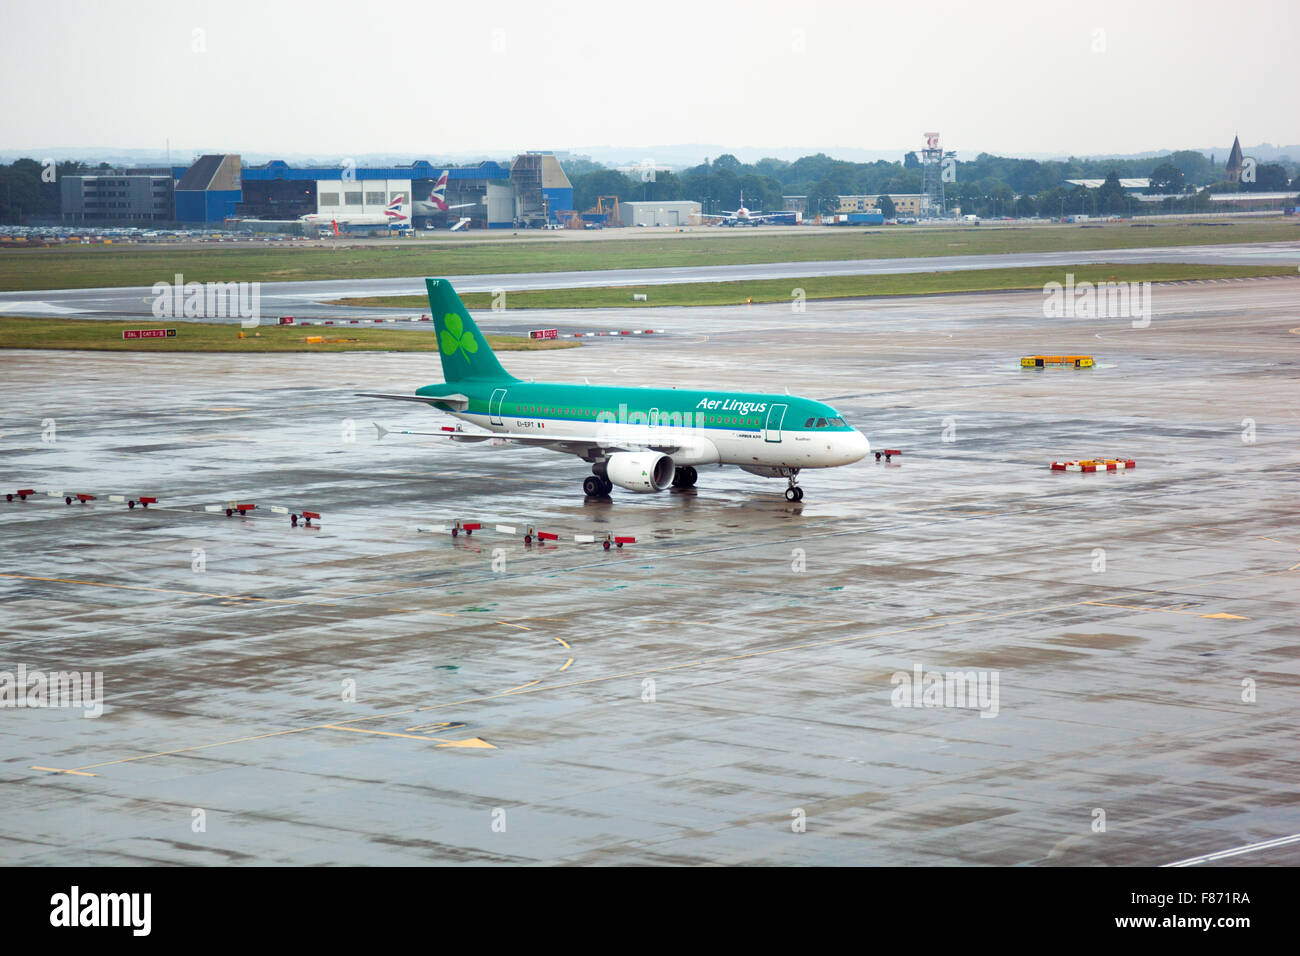 Aer Lingus airplane on the tarmac at an airport - Stock Image